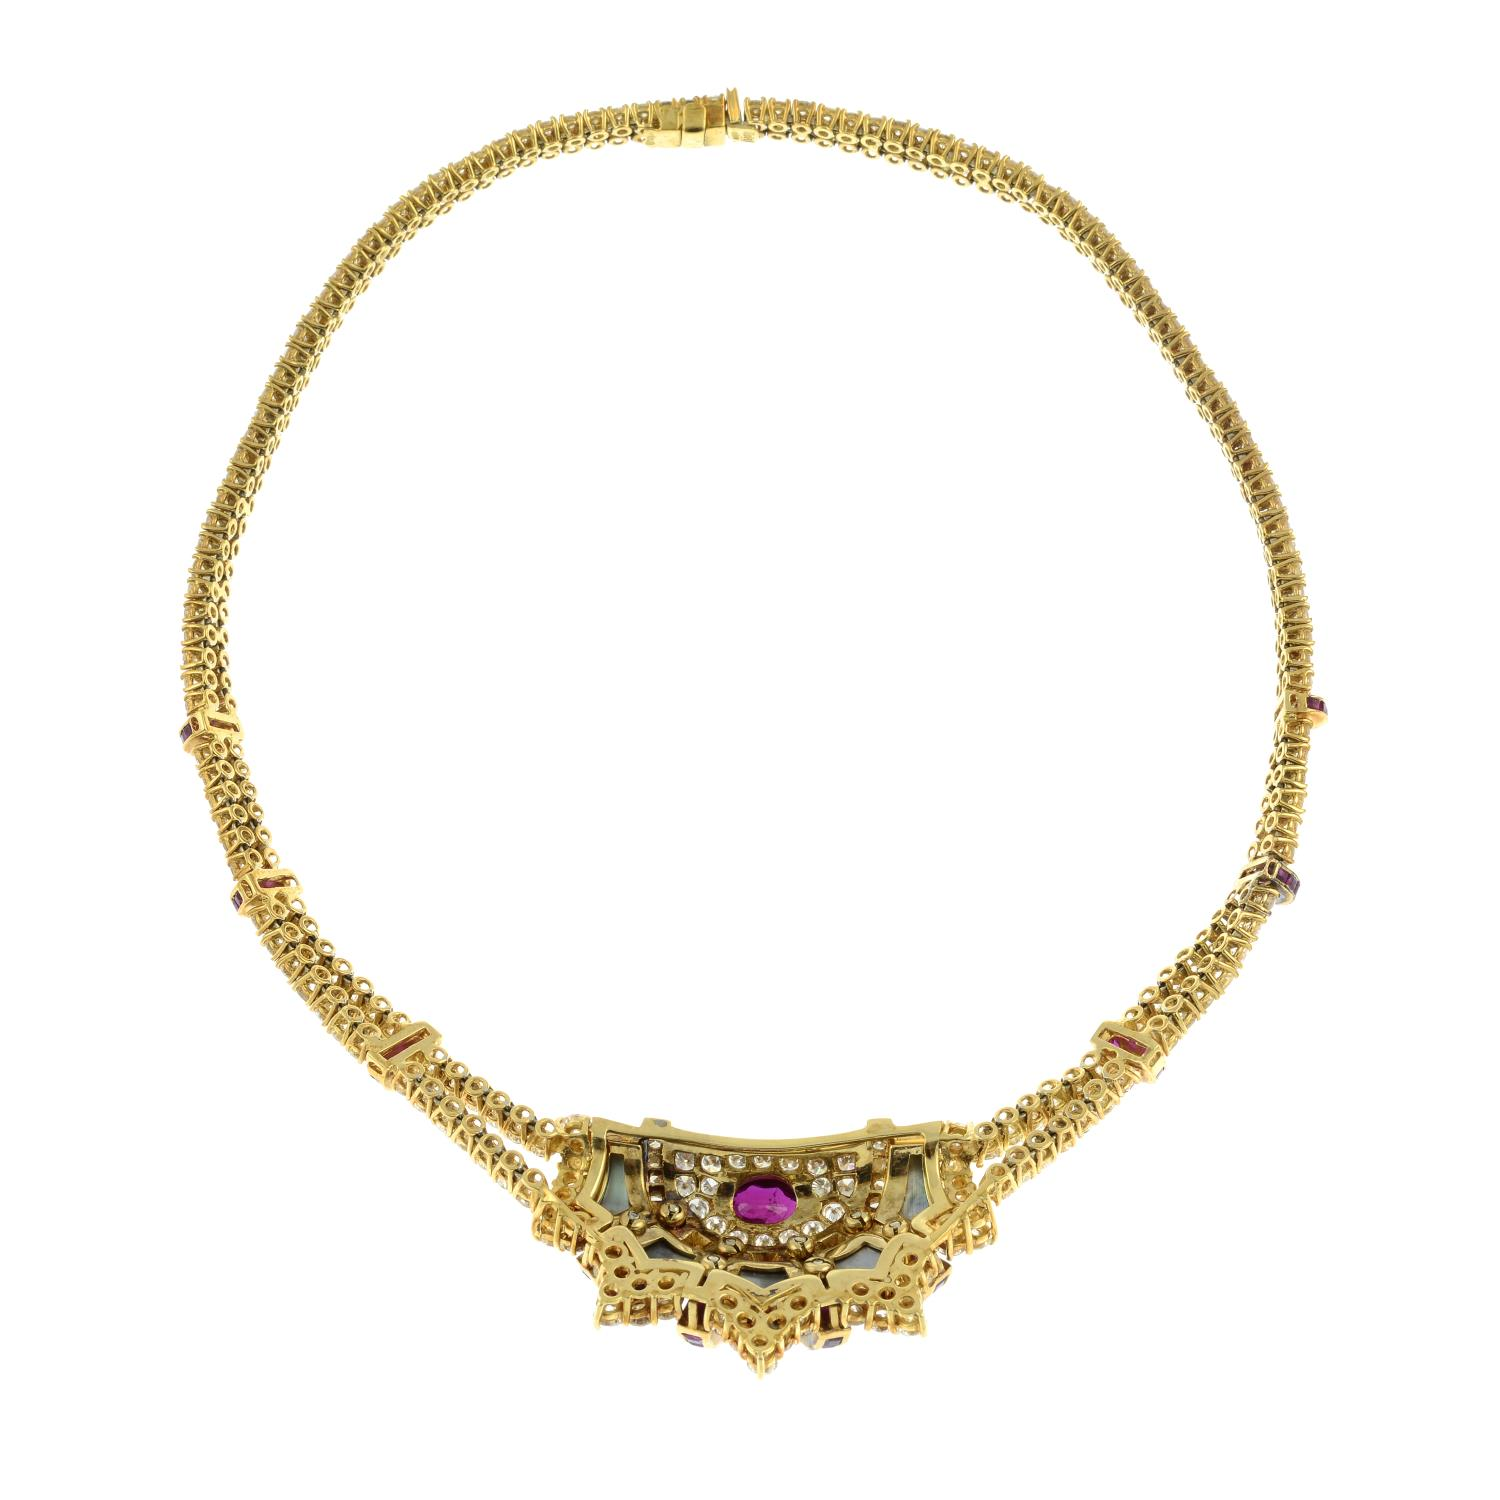 A diamond, ruby and grey mother-of pearl necklace, - Image 9 of 9